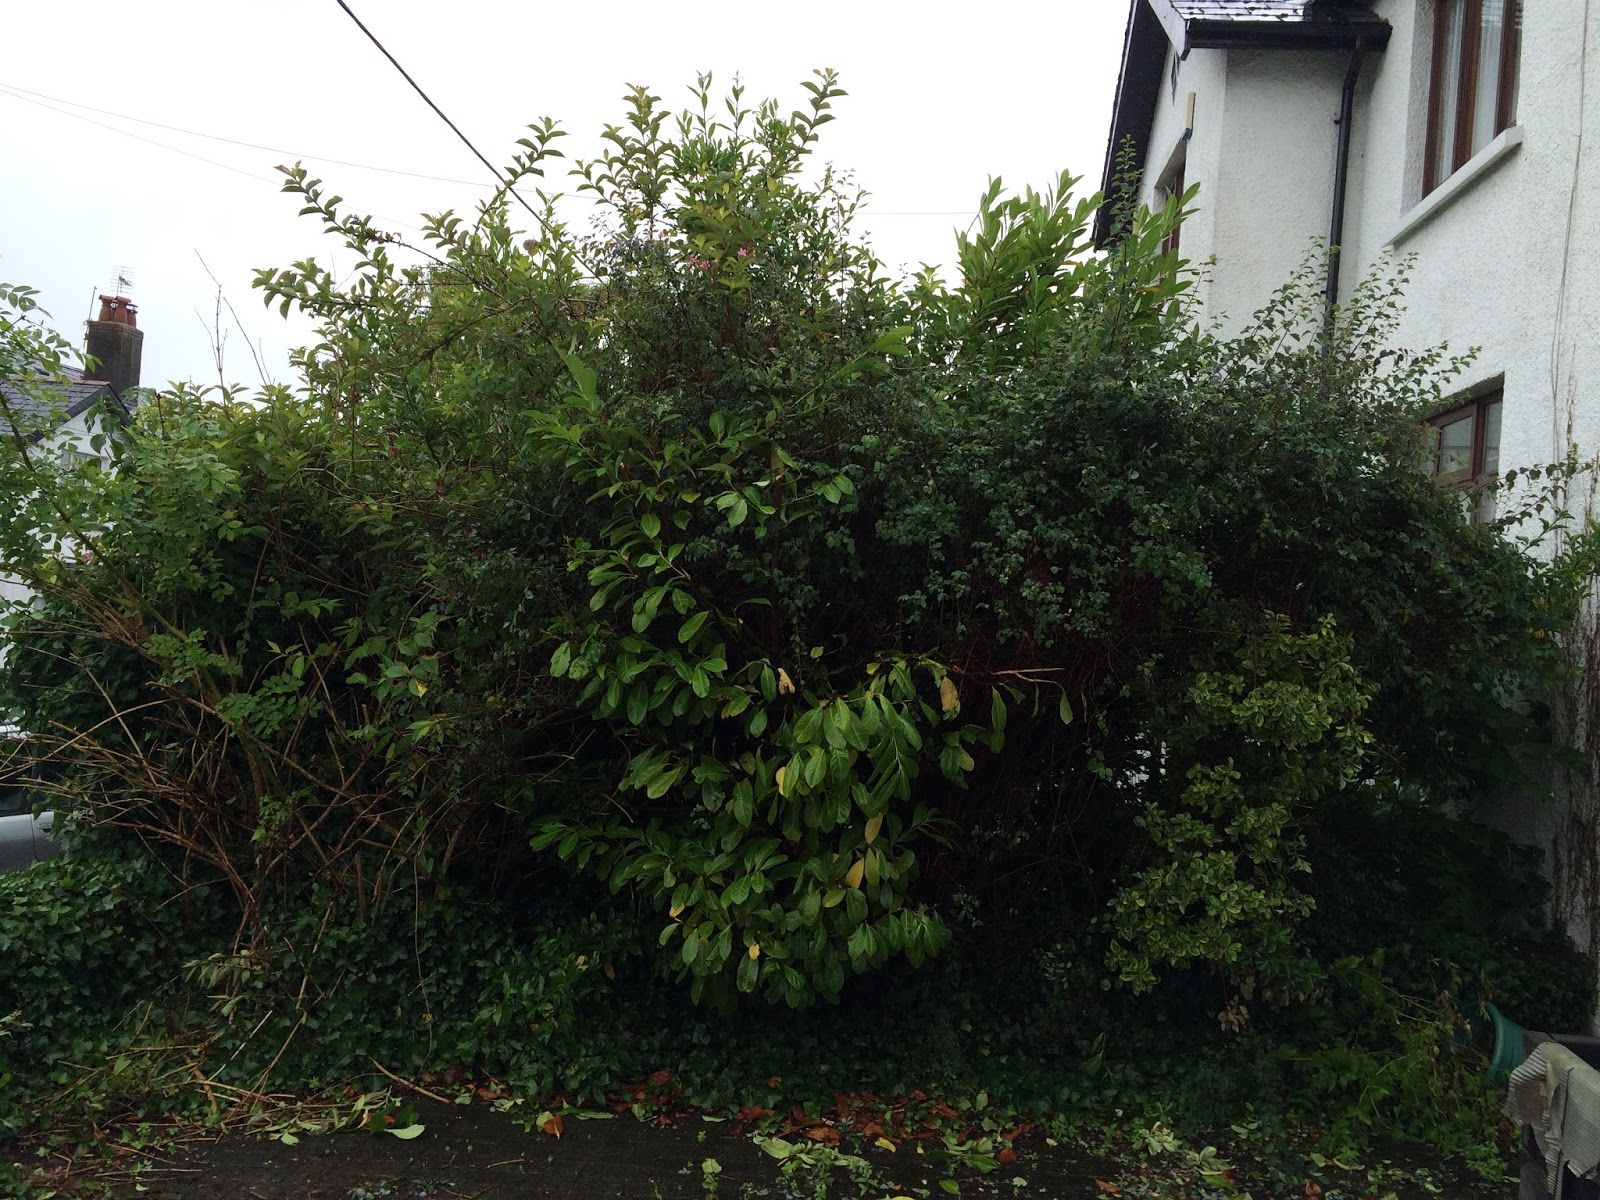 garden clean up - overgrown bush in front of house